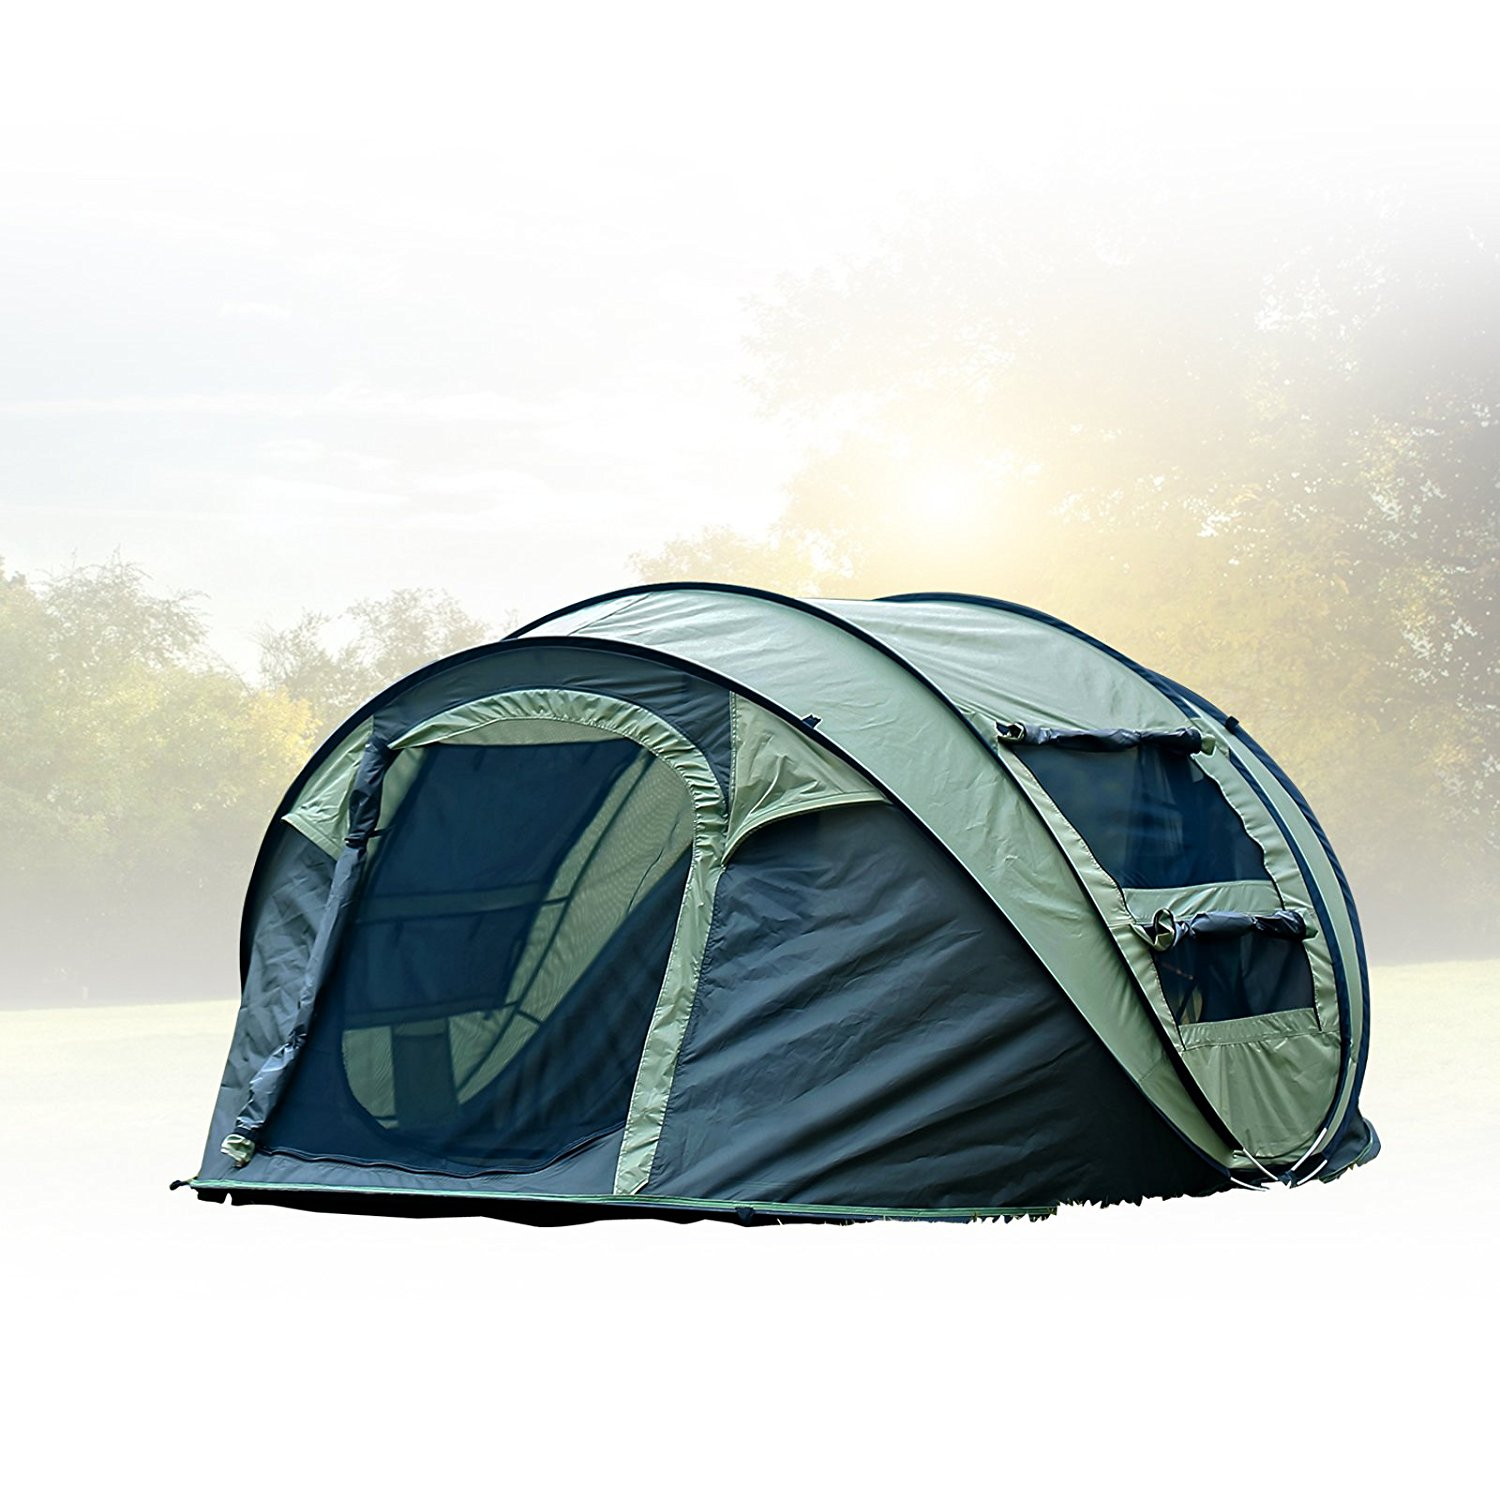 Fivejoy Instant 4 Person Tent